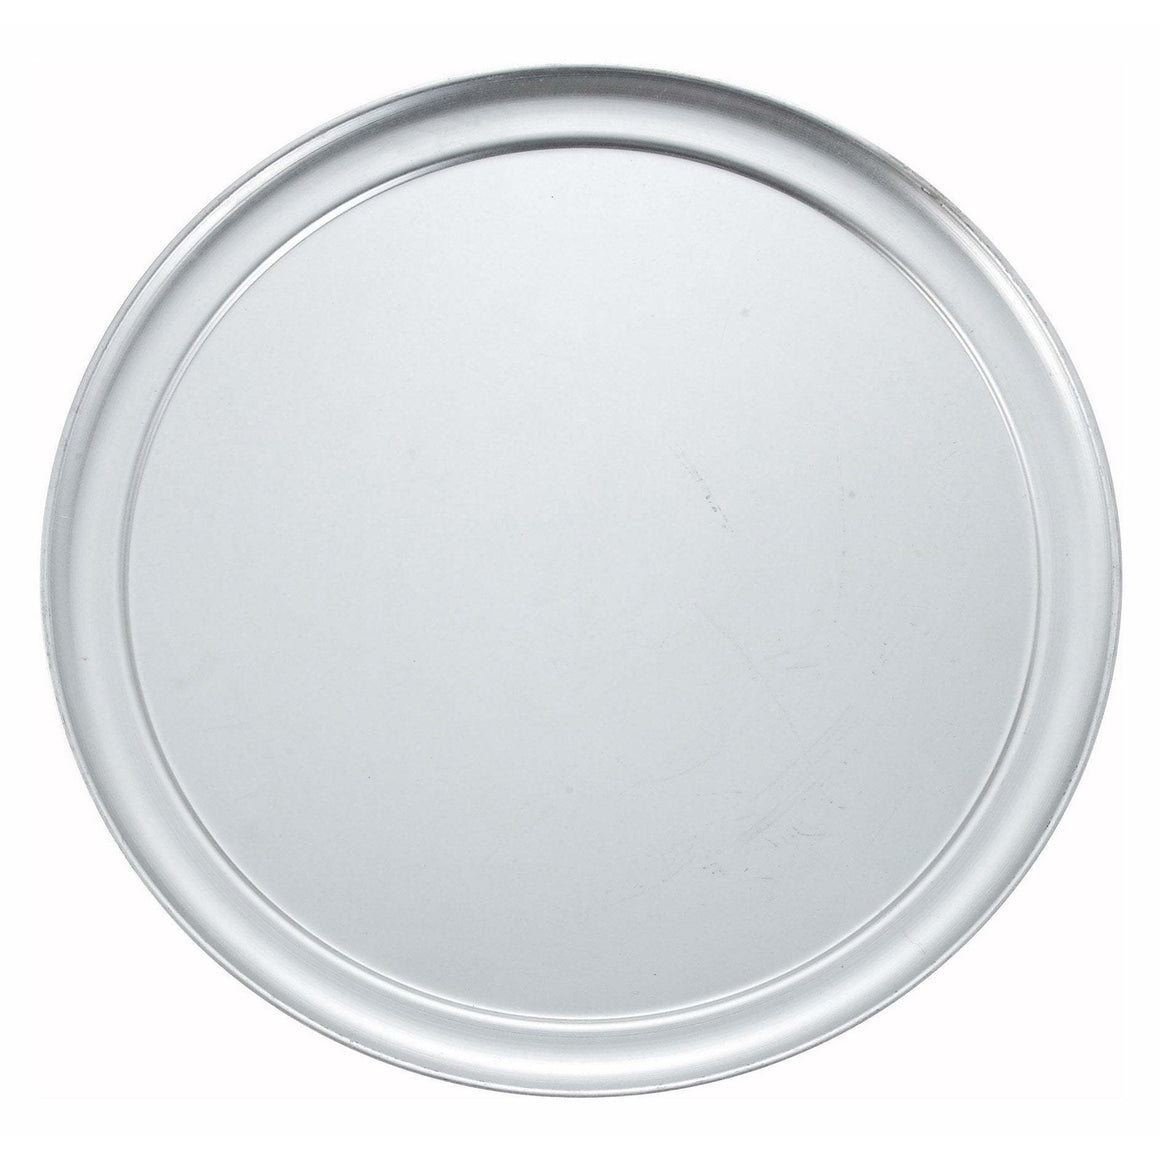 "Winco - APZT-13 - 13"" Wide Rim Pizza Tray, Aluminum - Pizza Supplies"